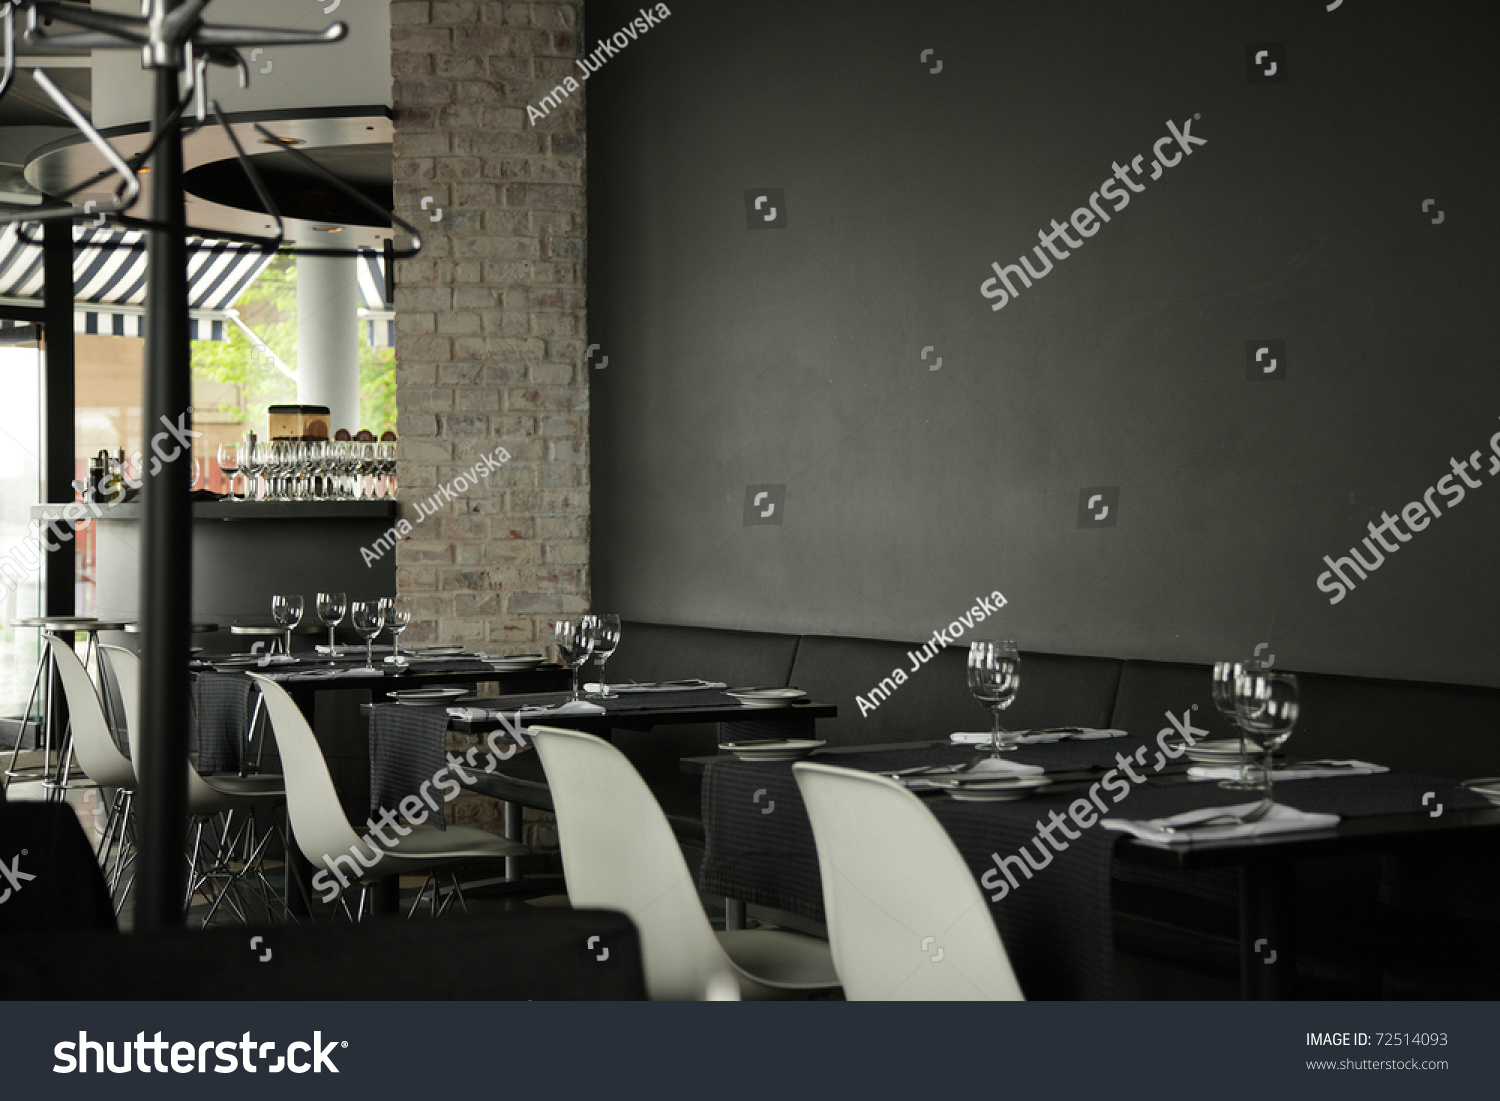 Restaurant interior background dark wall stock photo